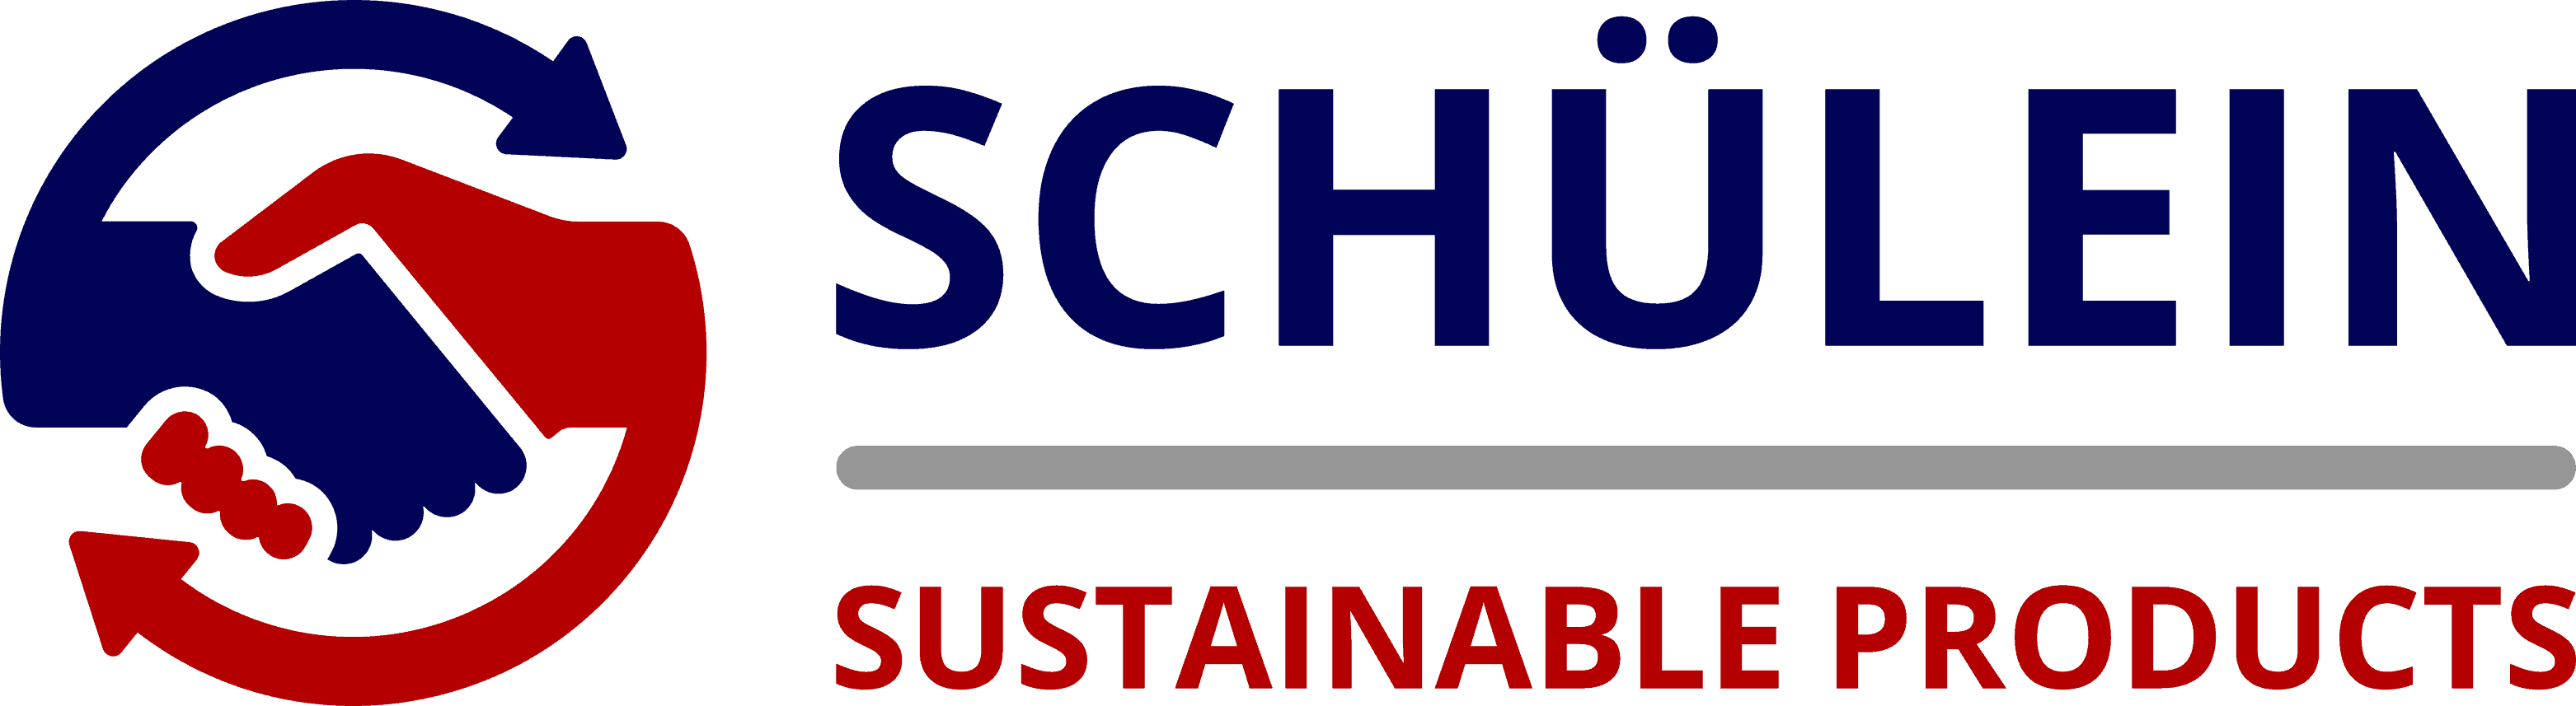 Sustainable Products Schuelein